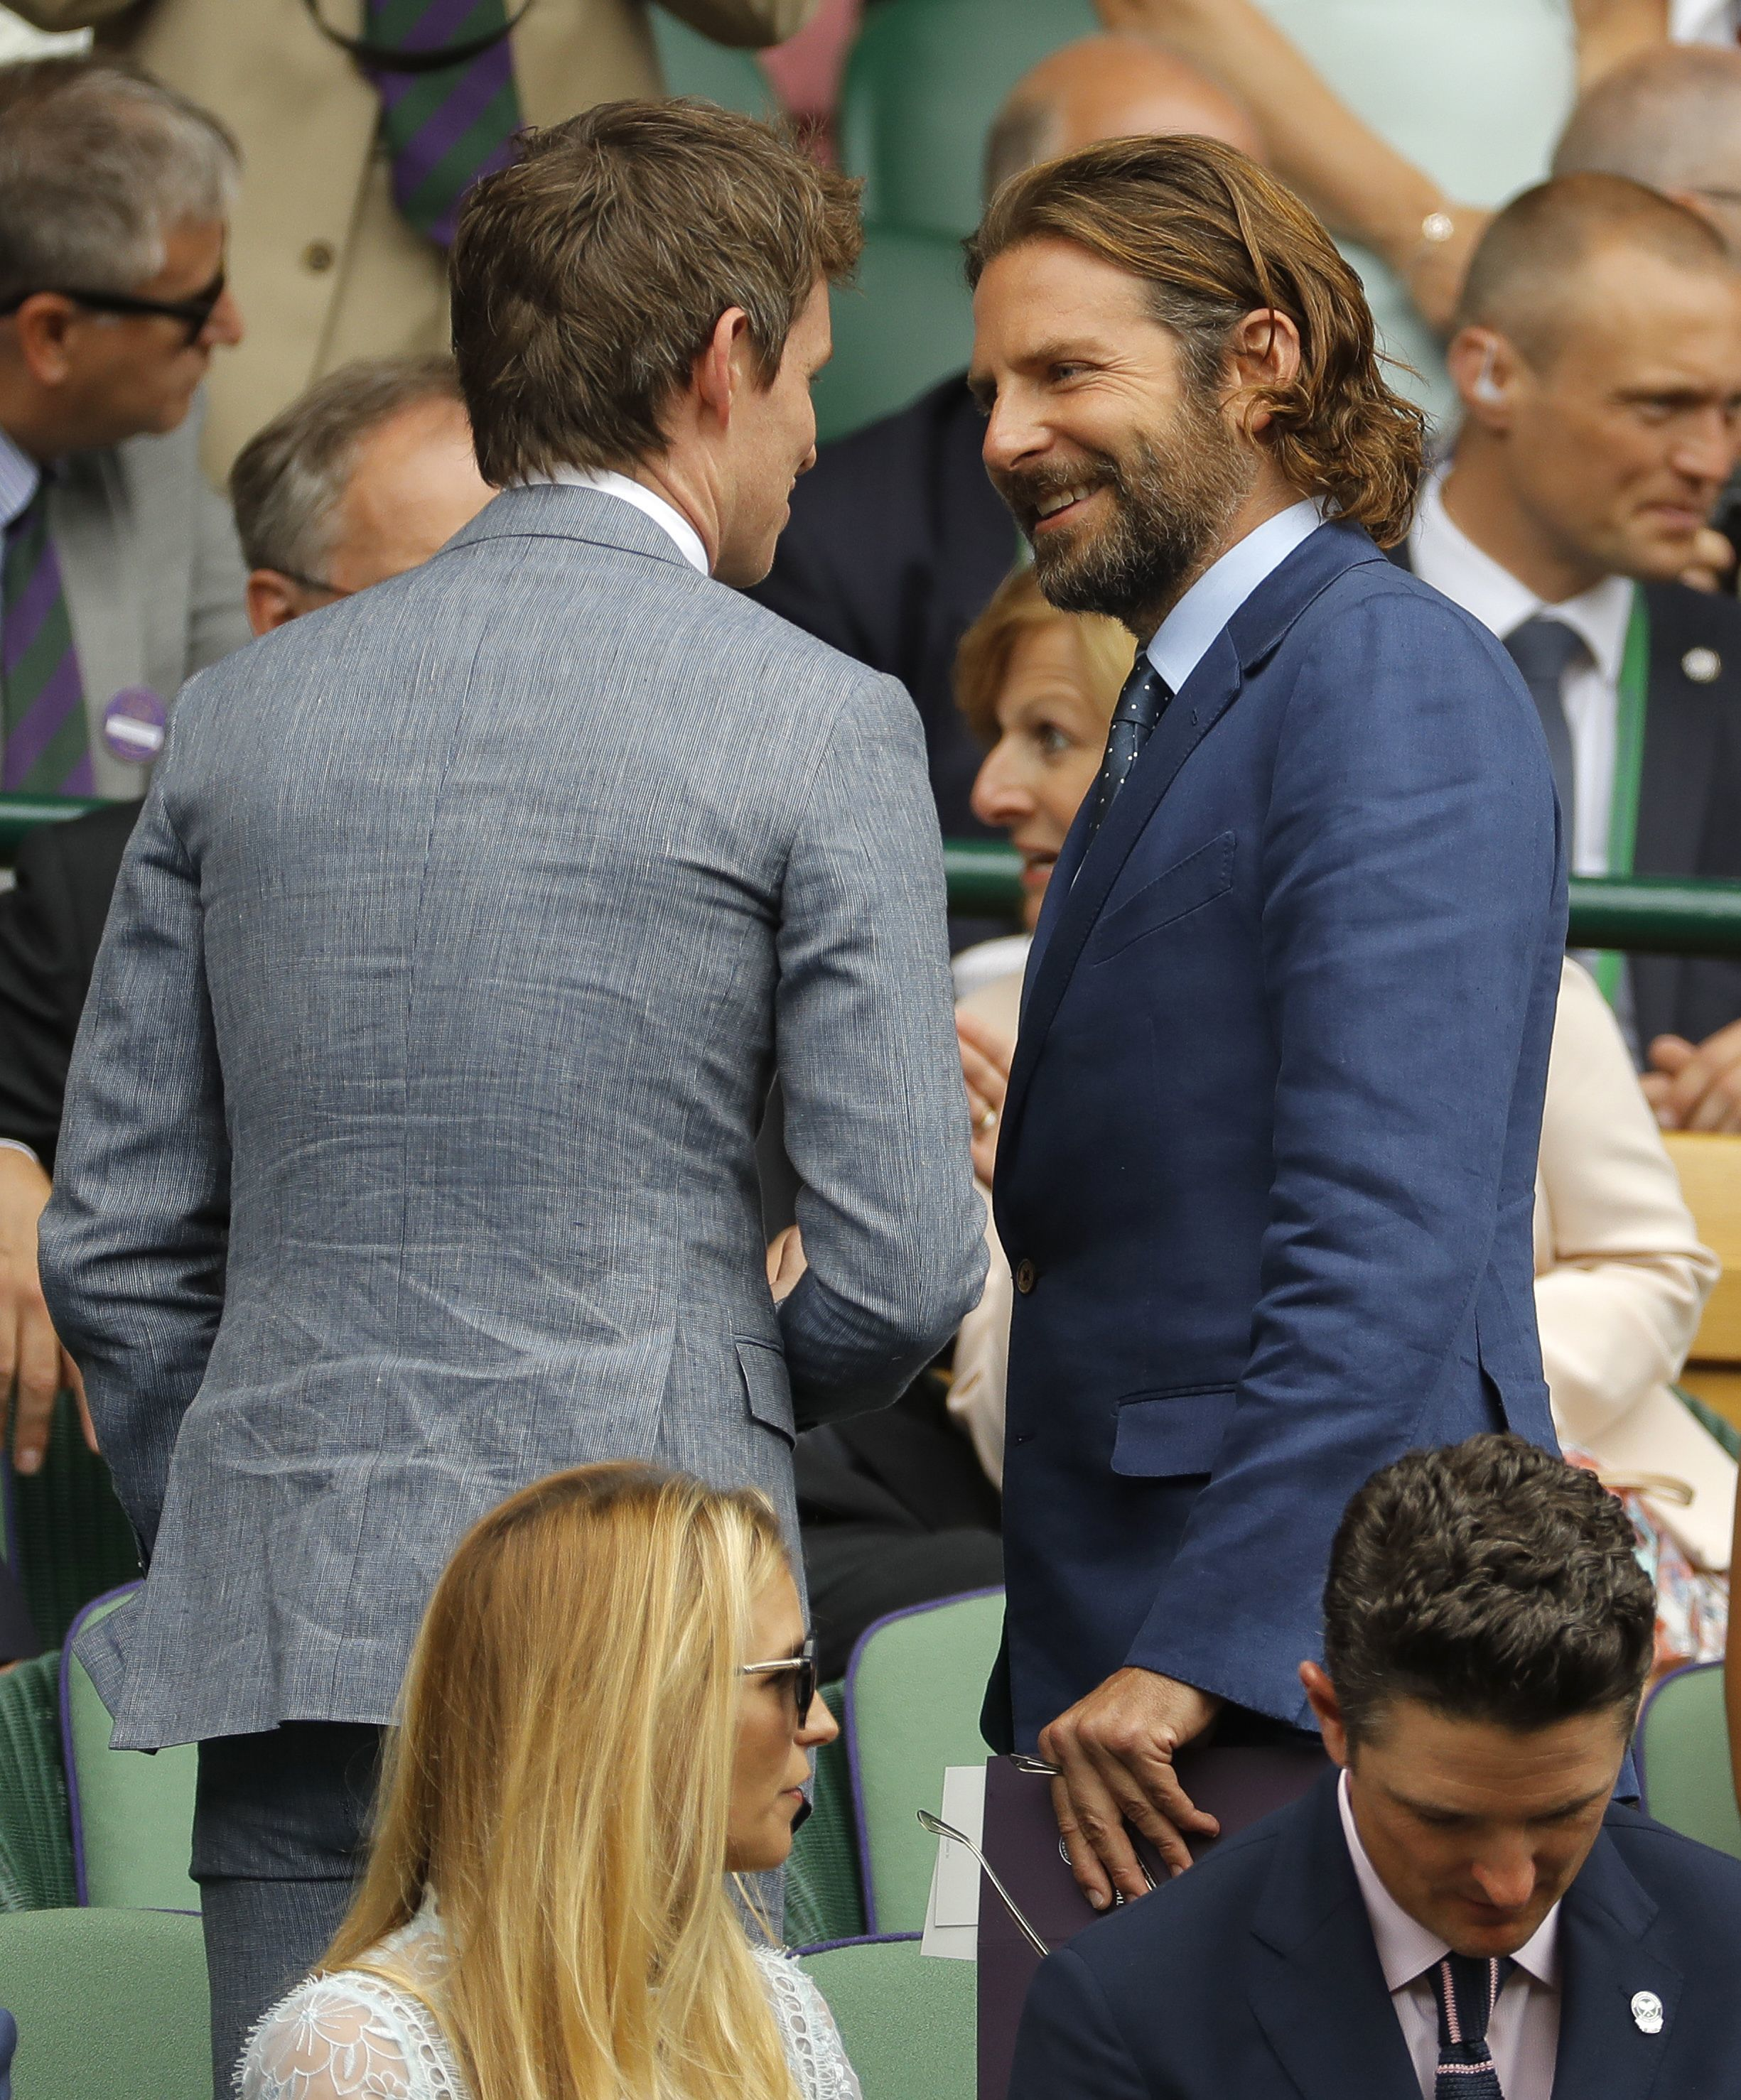 Eddie Redmayne chats with Bradley Cooper before taking his seat in the royal box for the men's singles final match between Switzerland's Roger Federer and Croatia's Marin Cilic on Day 13 at the Wimbledon Tennis Championships in London on July 16, 2017.